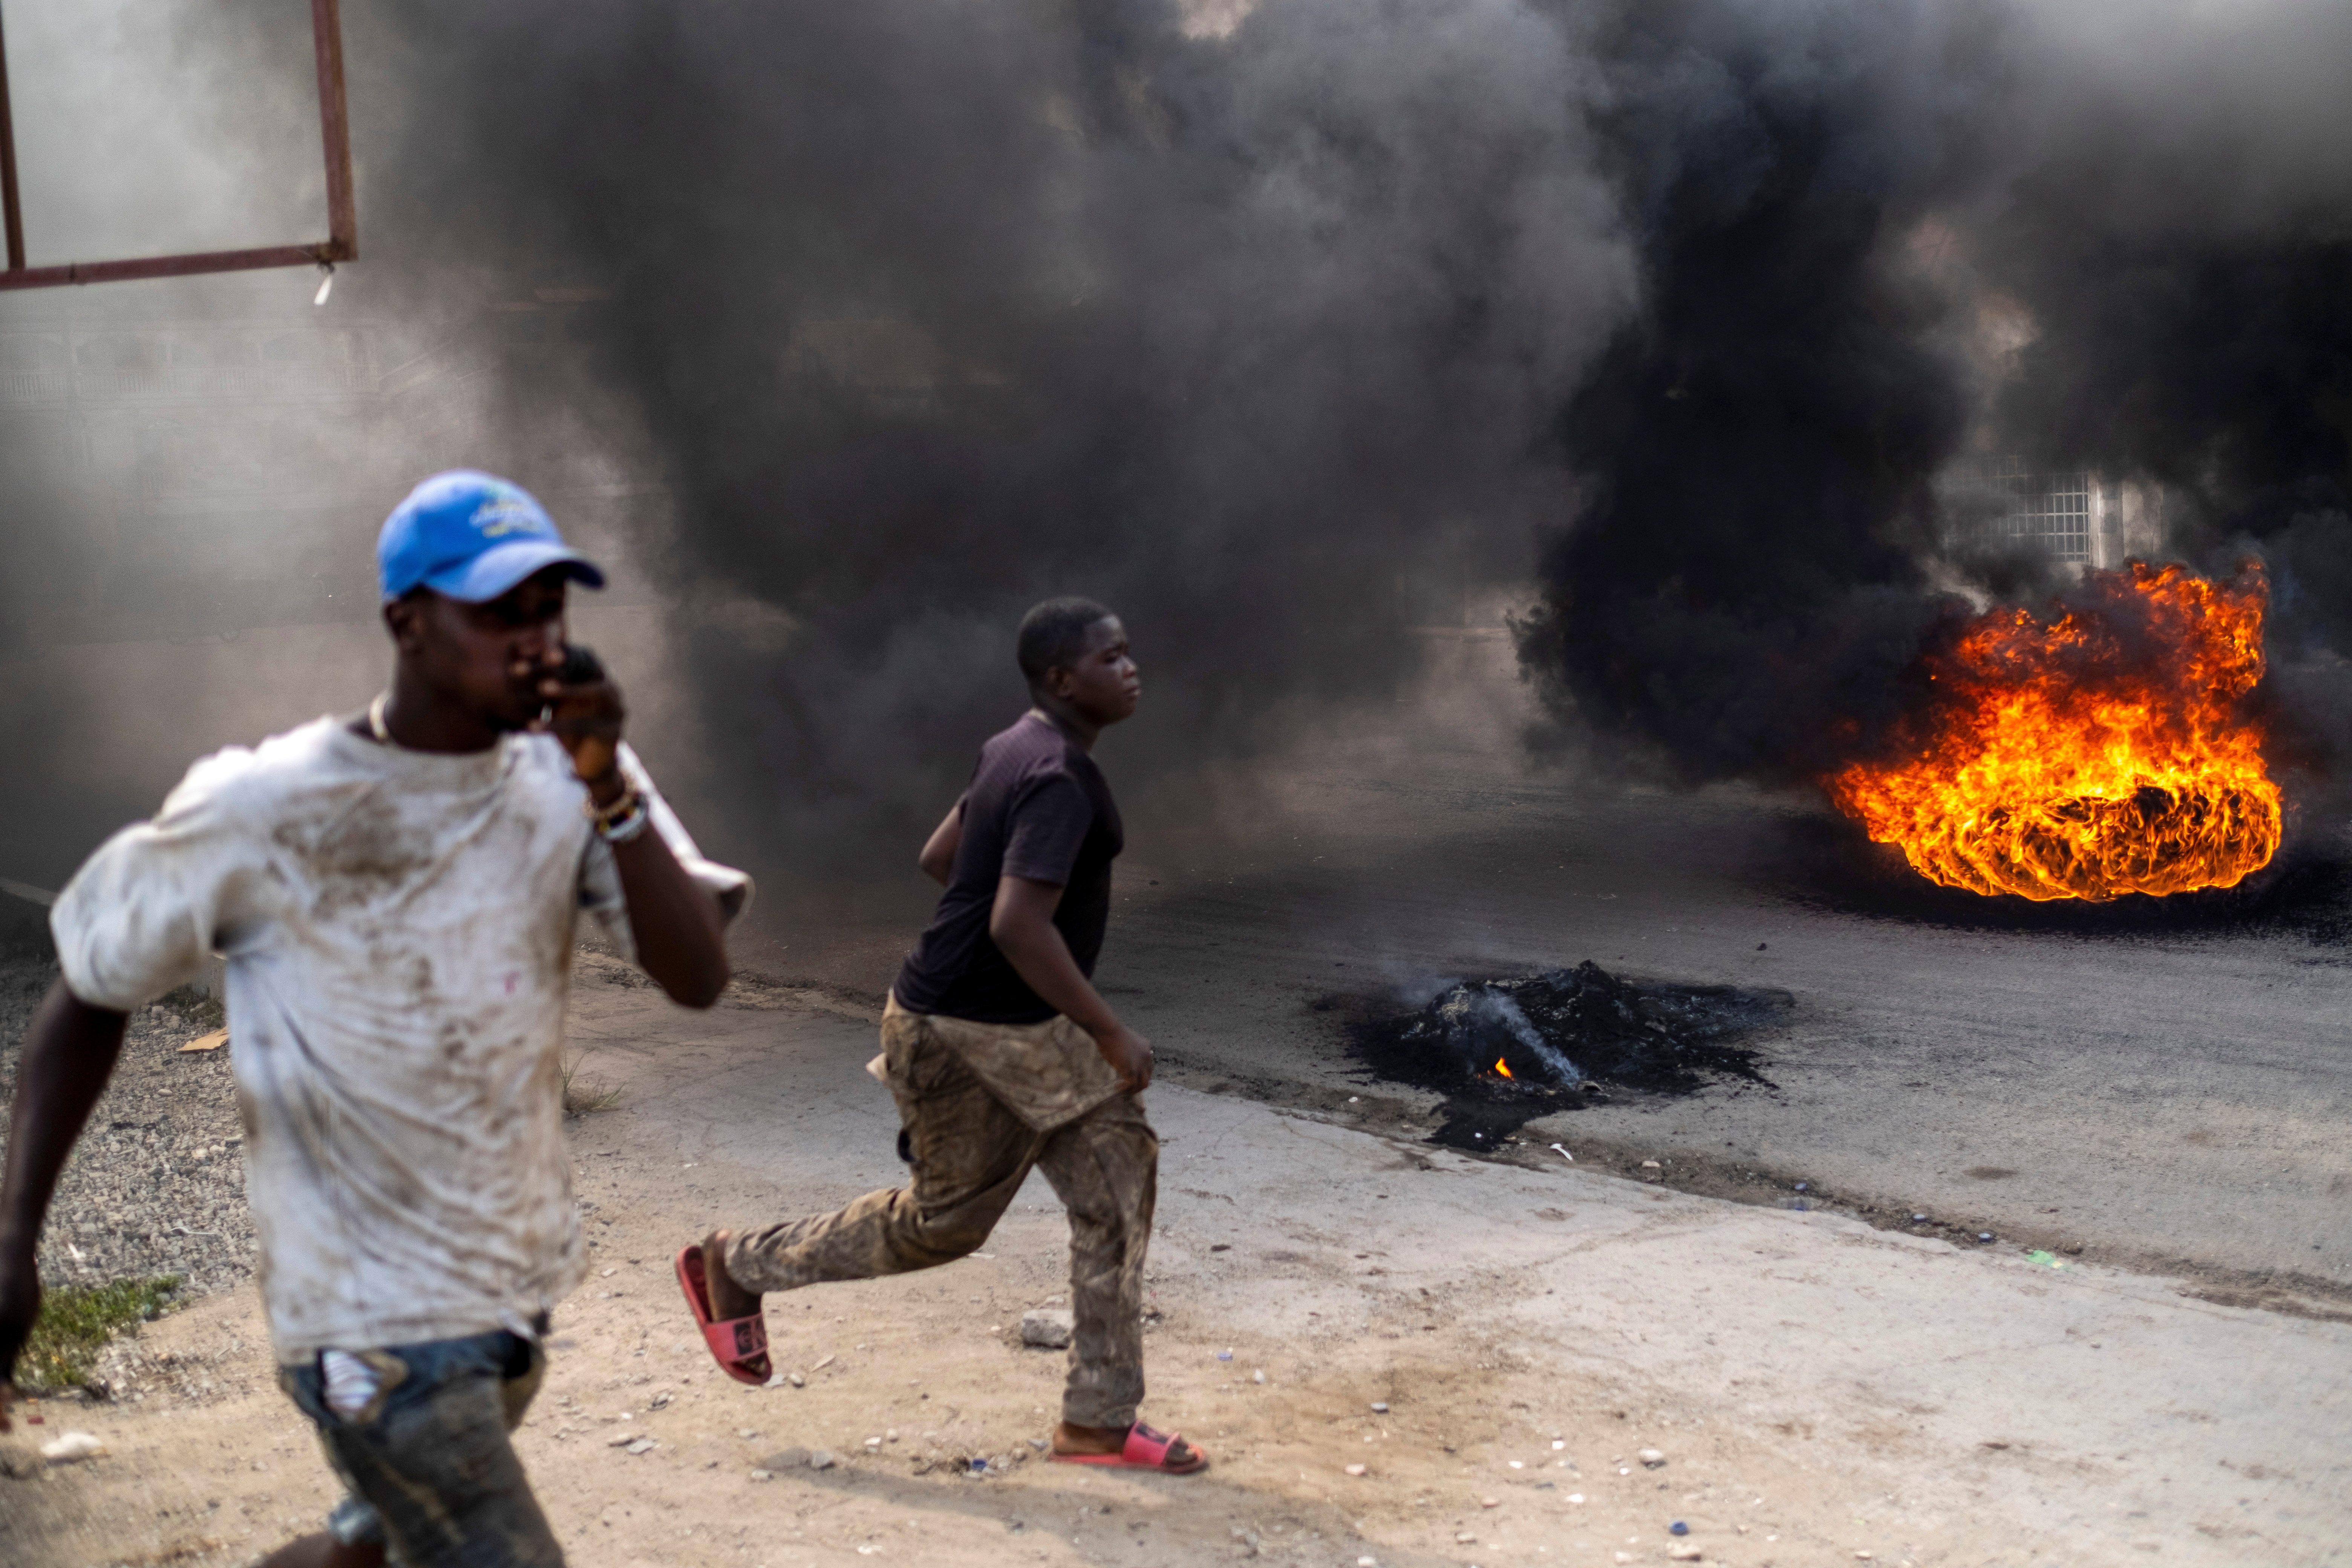 People walk along a street filled with smoke from burning tires during a protest against the assassination of Haitian President Jovenel Moise in Cap-Haitien, Haiti July 22, 2021. REUTERS/Ricardo Arduengo